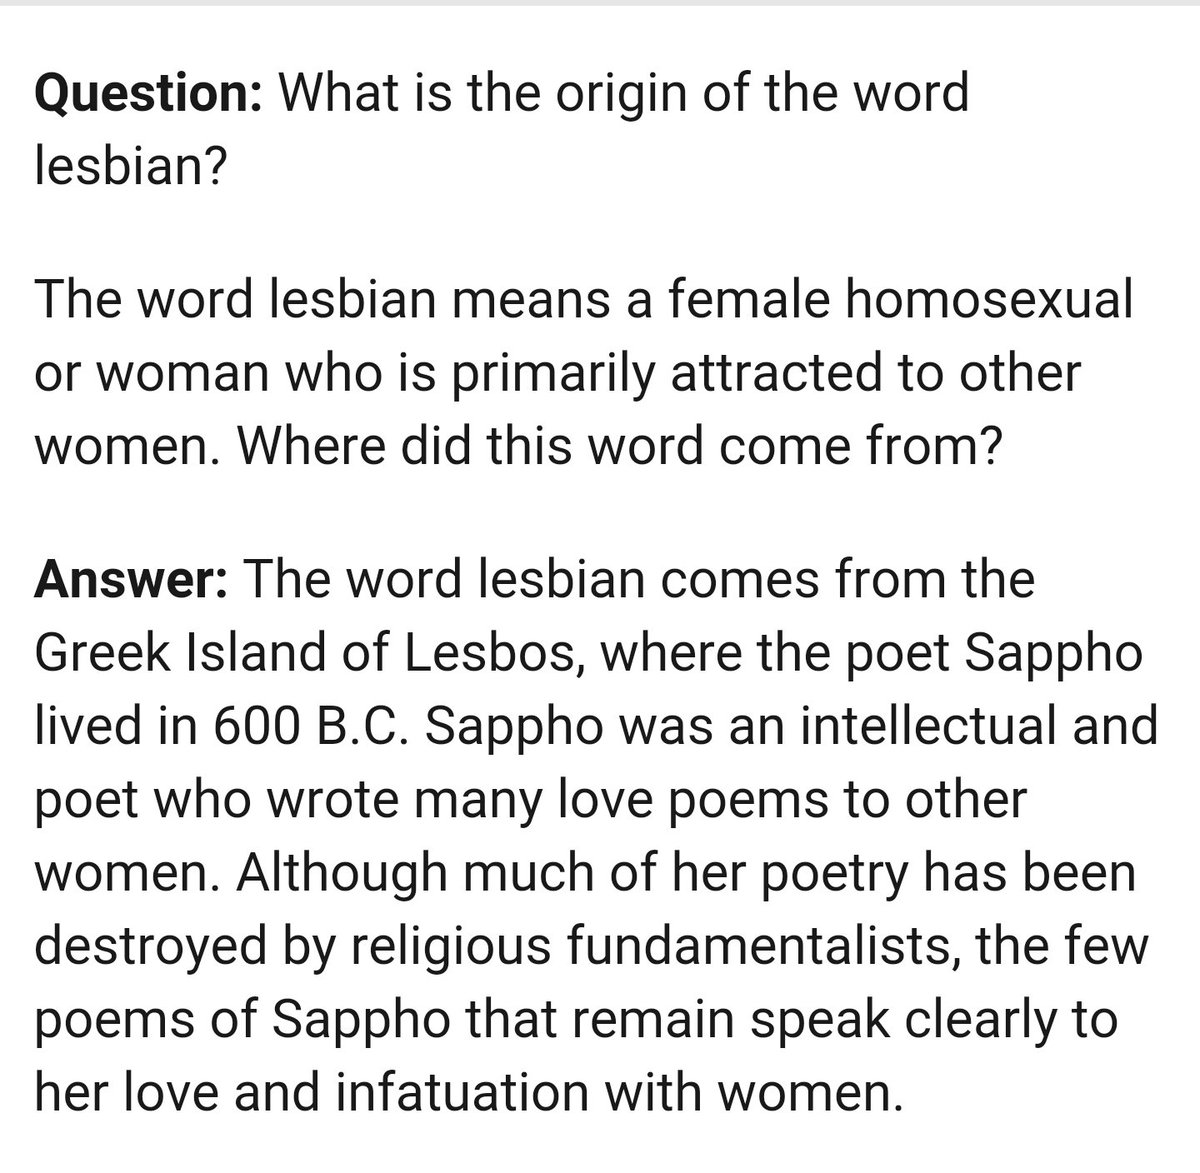 Where did the word lesbian come from